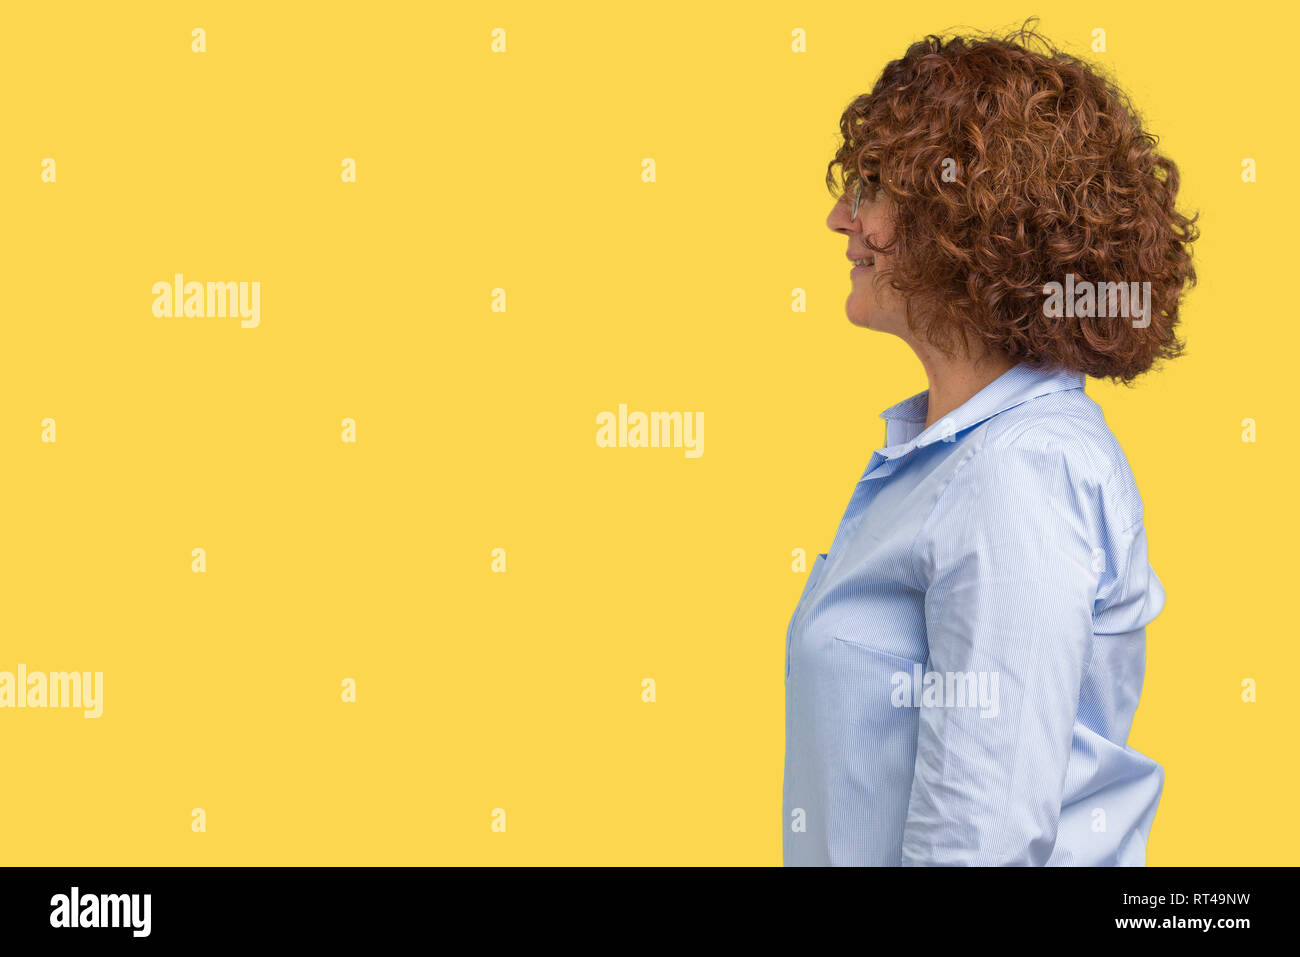 Relax Fh Rt Woman Profile Face Curly Stock Photos Woman Profile Face Curly